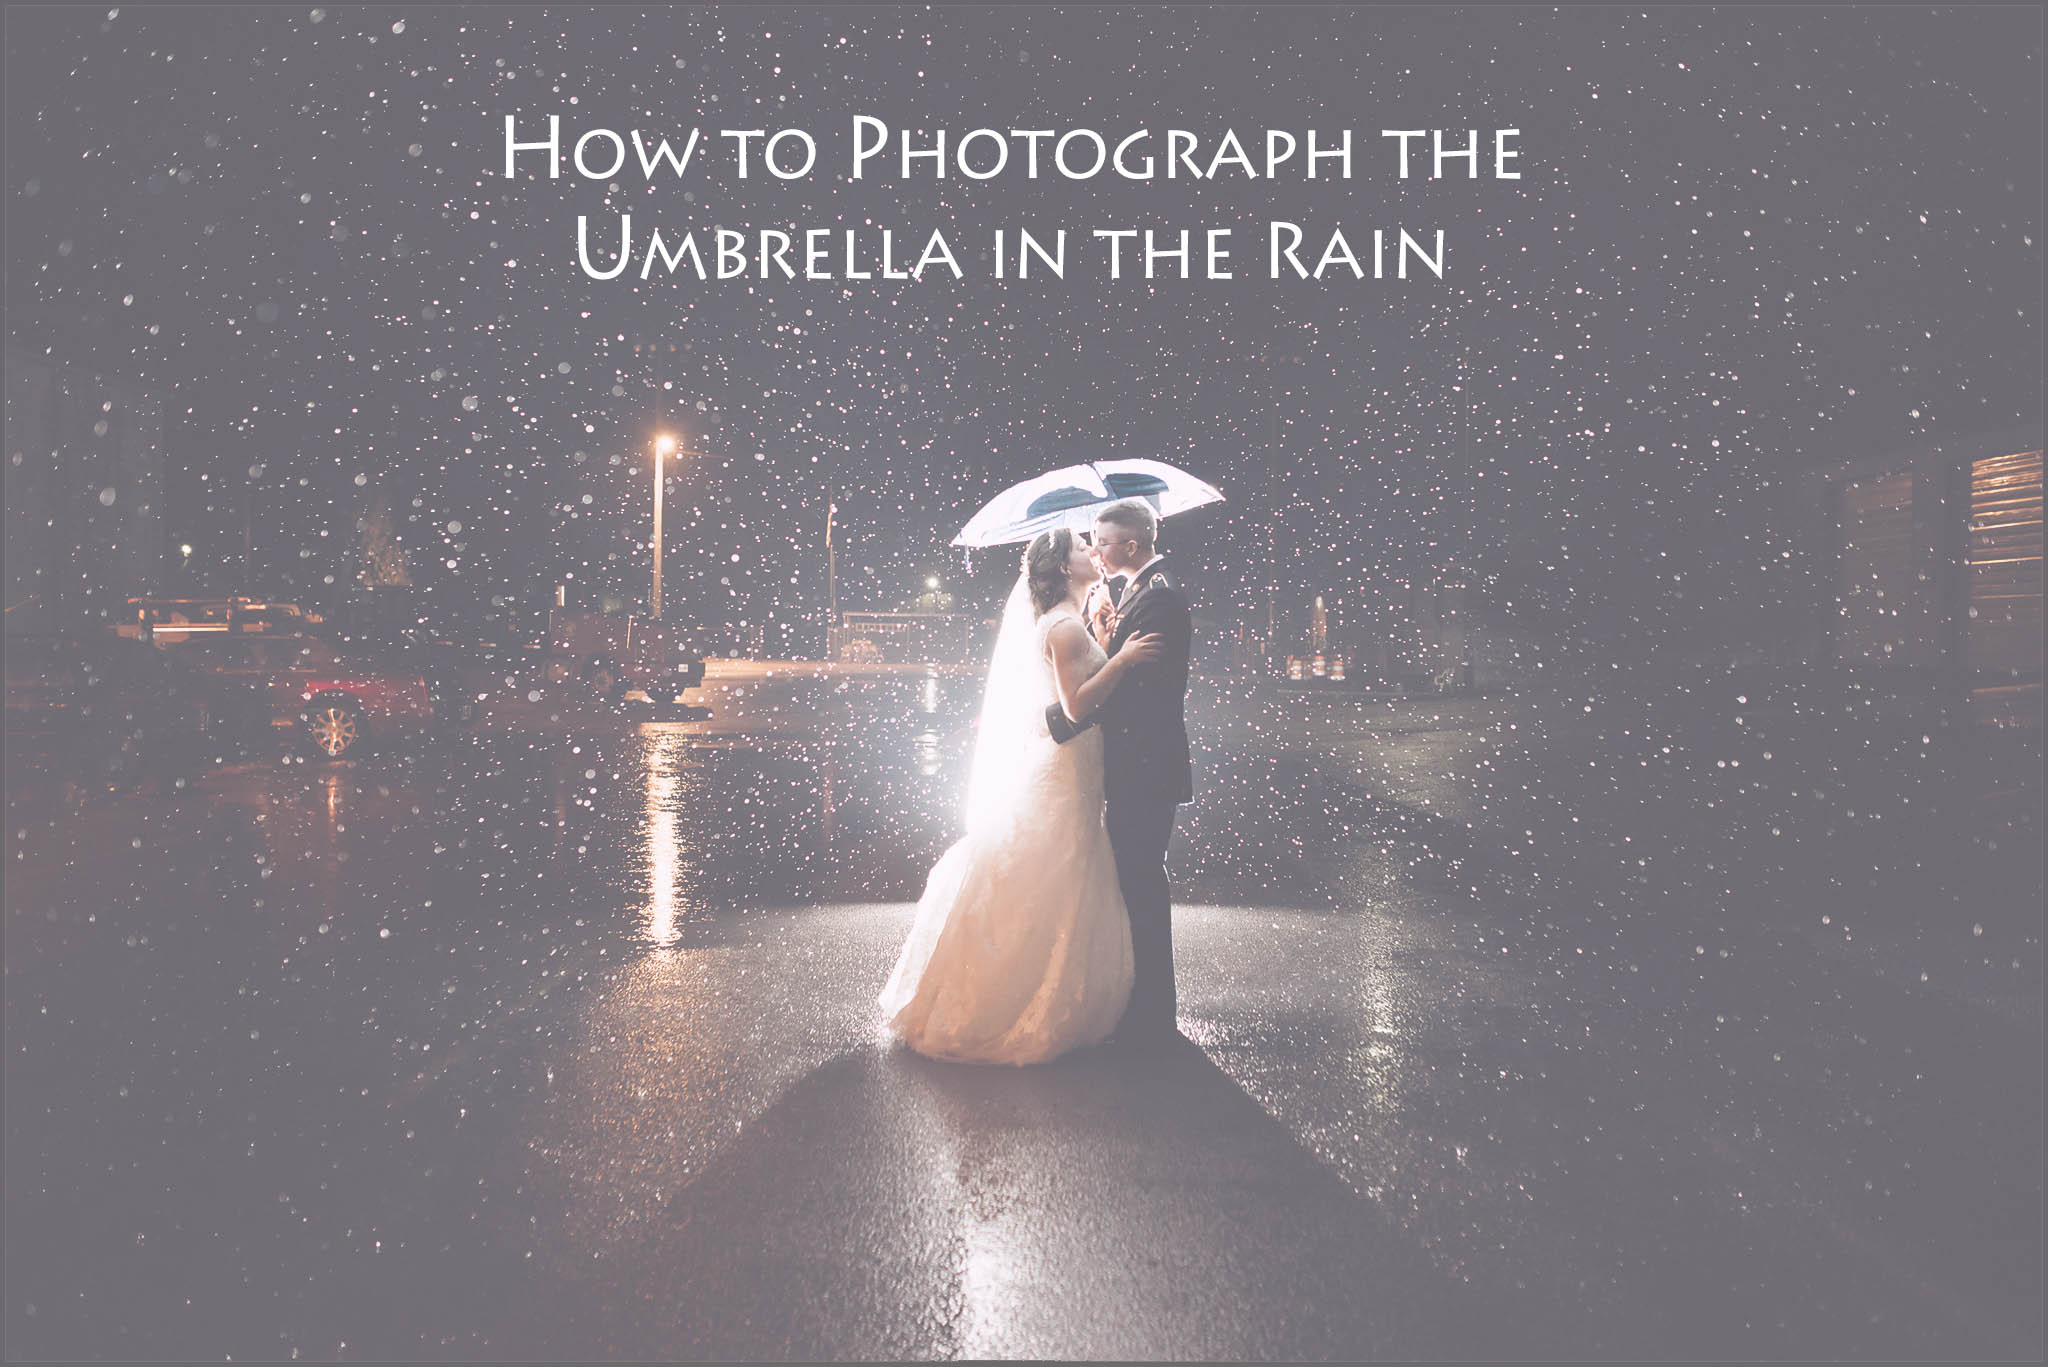 How to Photograph a bride and groom in the rain under an umbrella